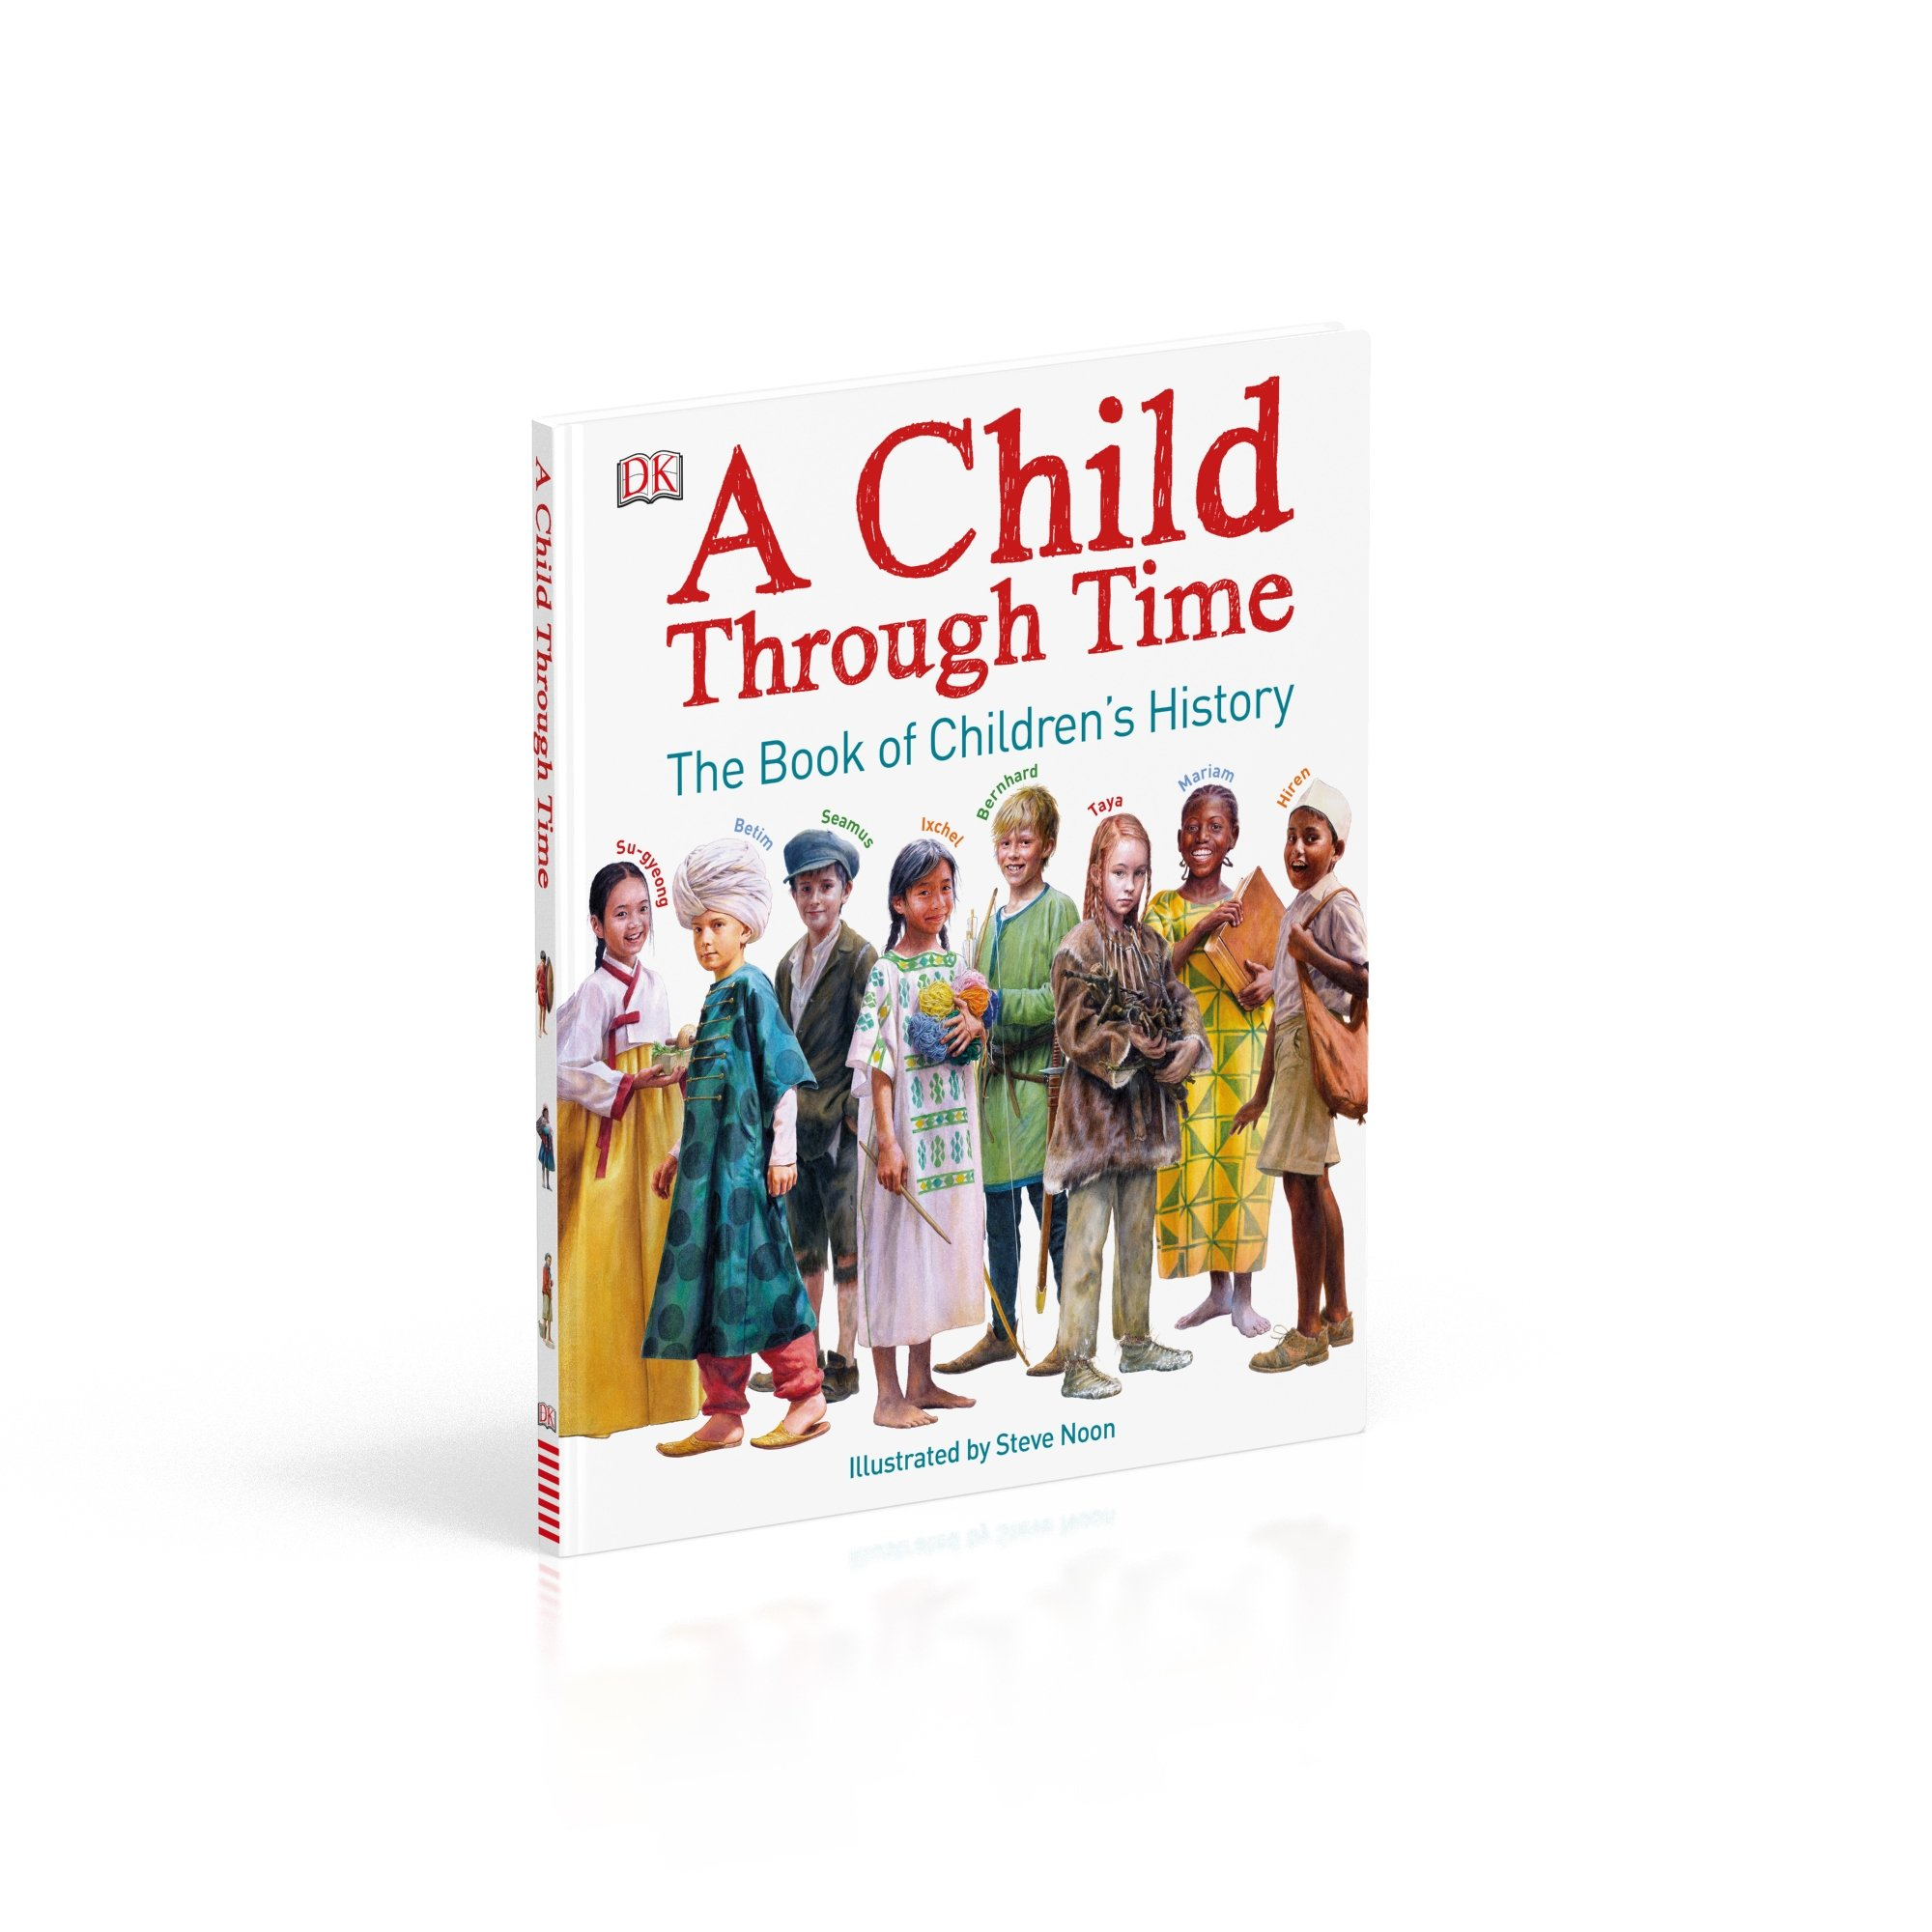 A Child Through Time: The Book of Children's History by DK Children (Image #6)